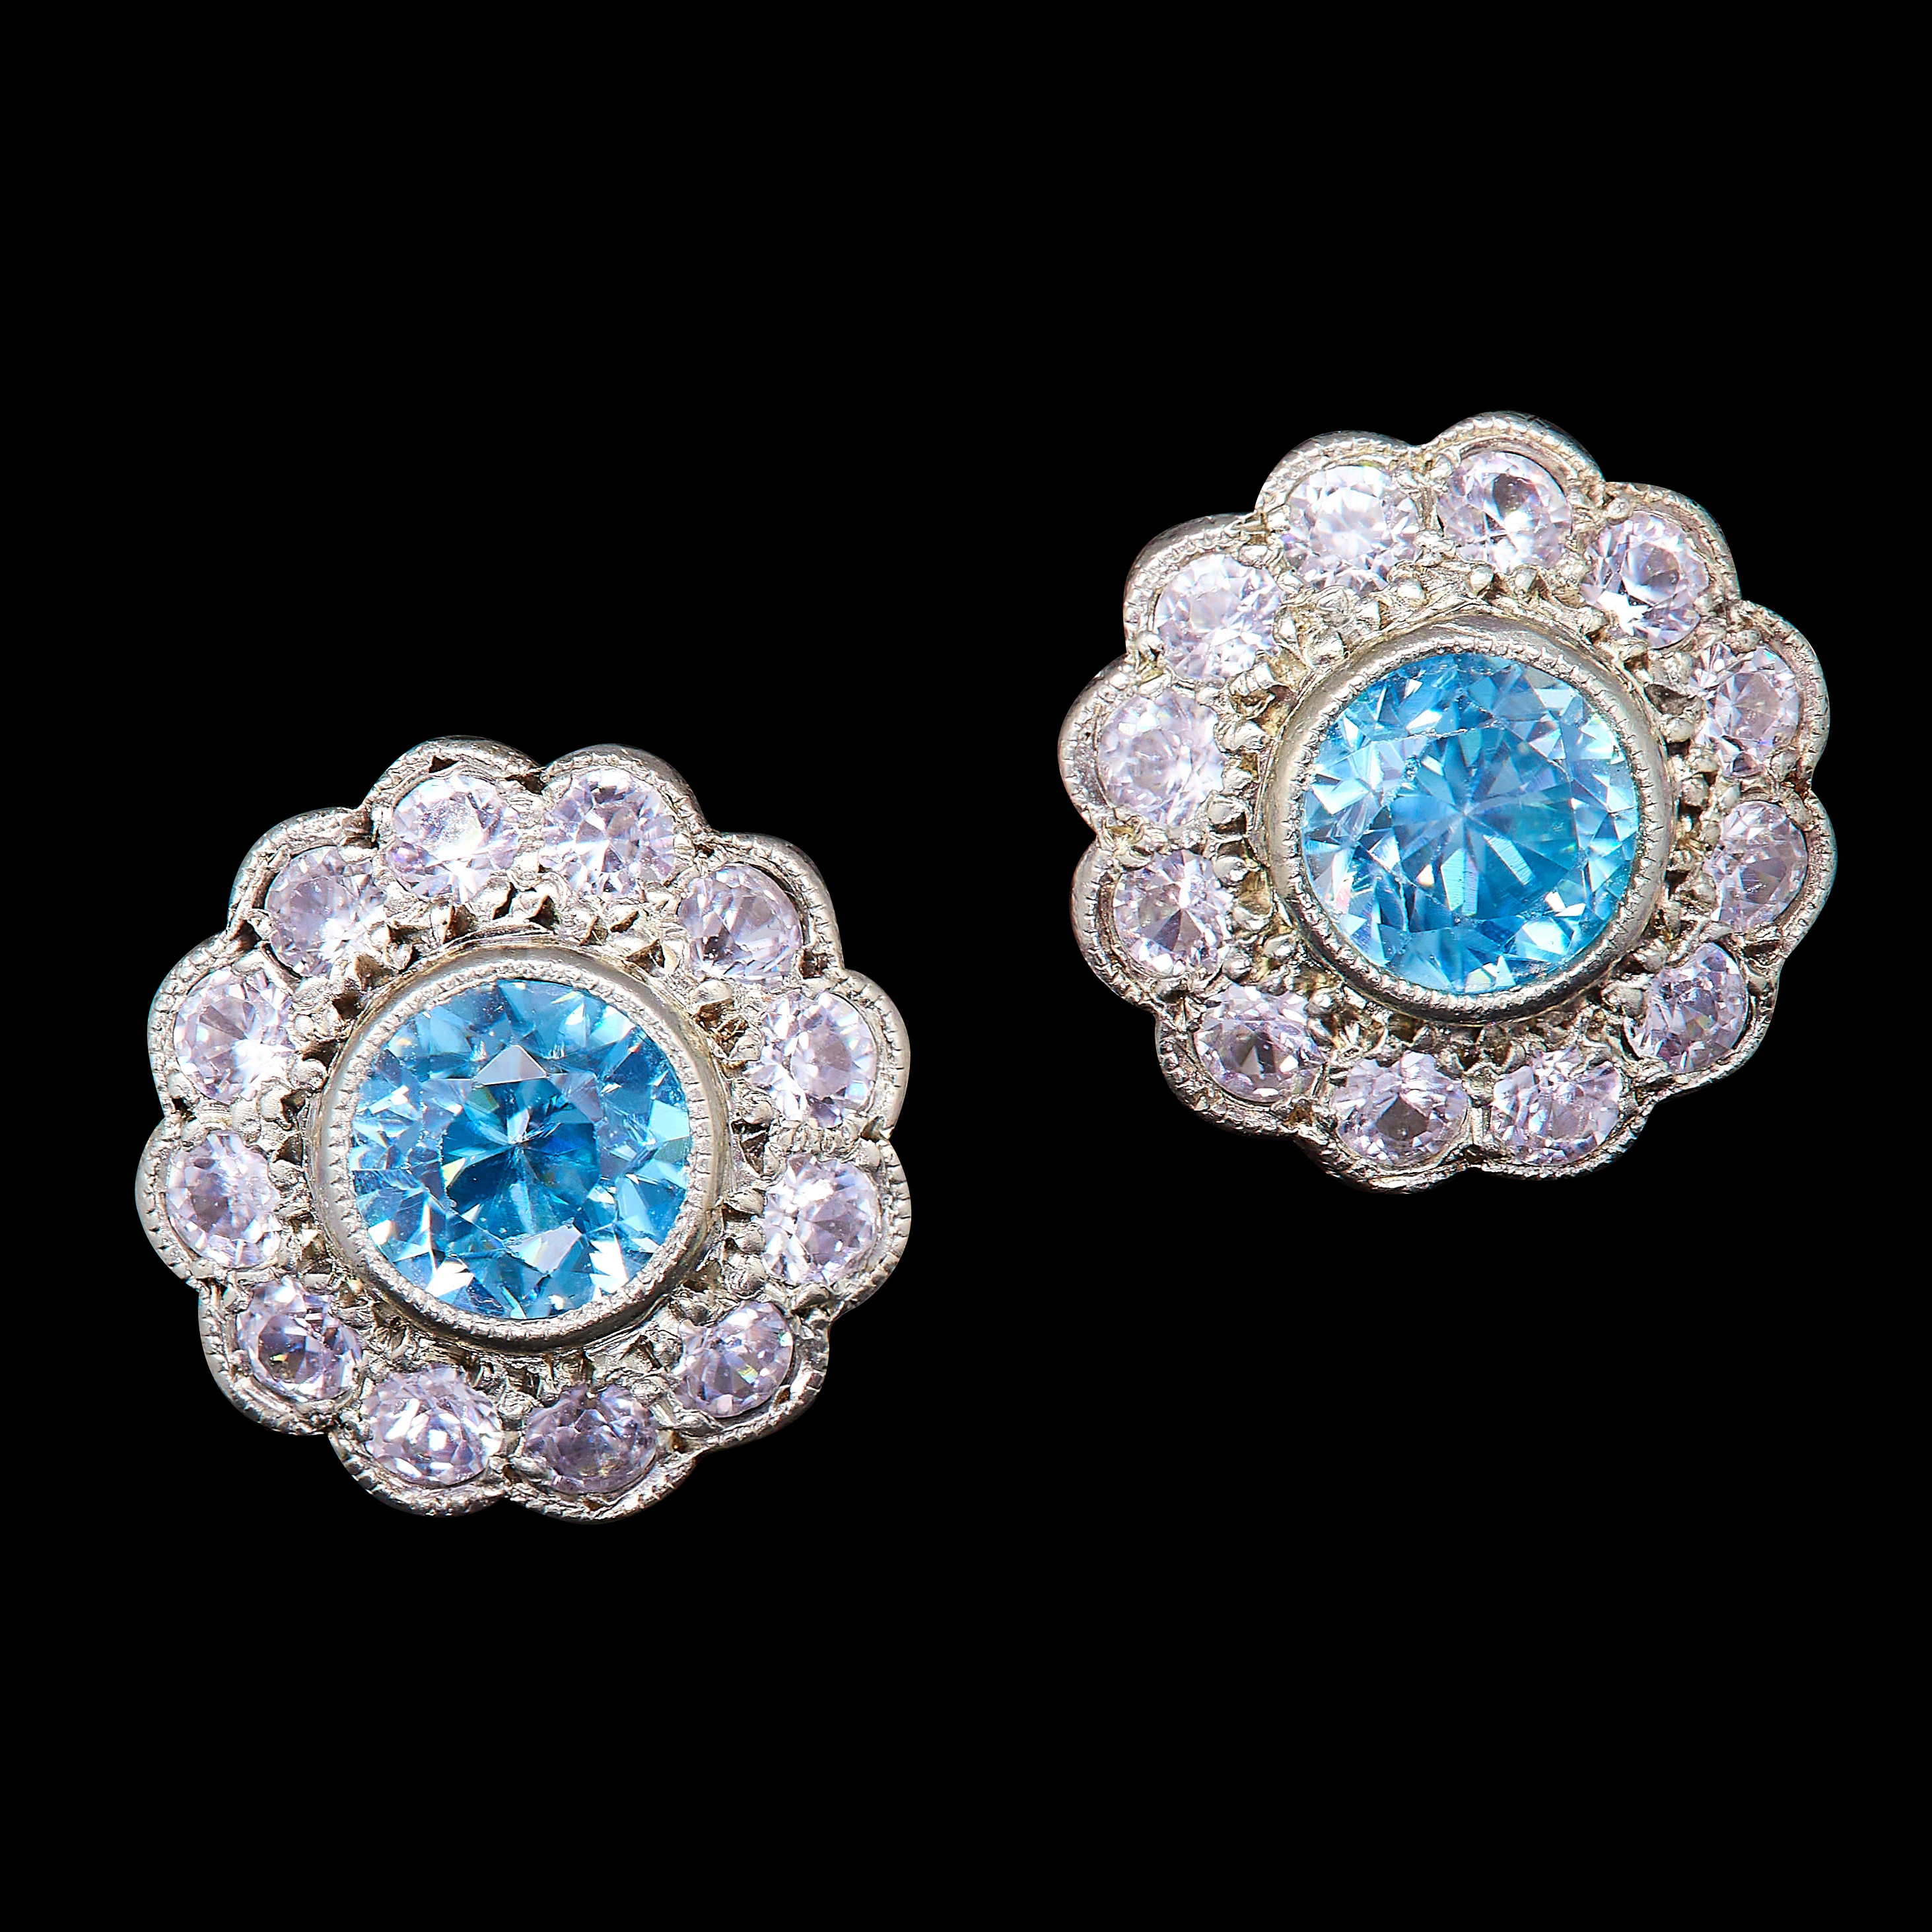 PAIR OF BLUE ZIRCON AND WHITE SAPPHIRE CLUSTER EARSTUDS